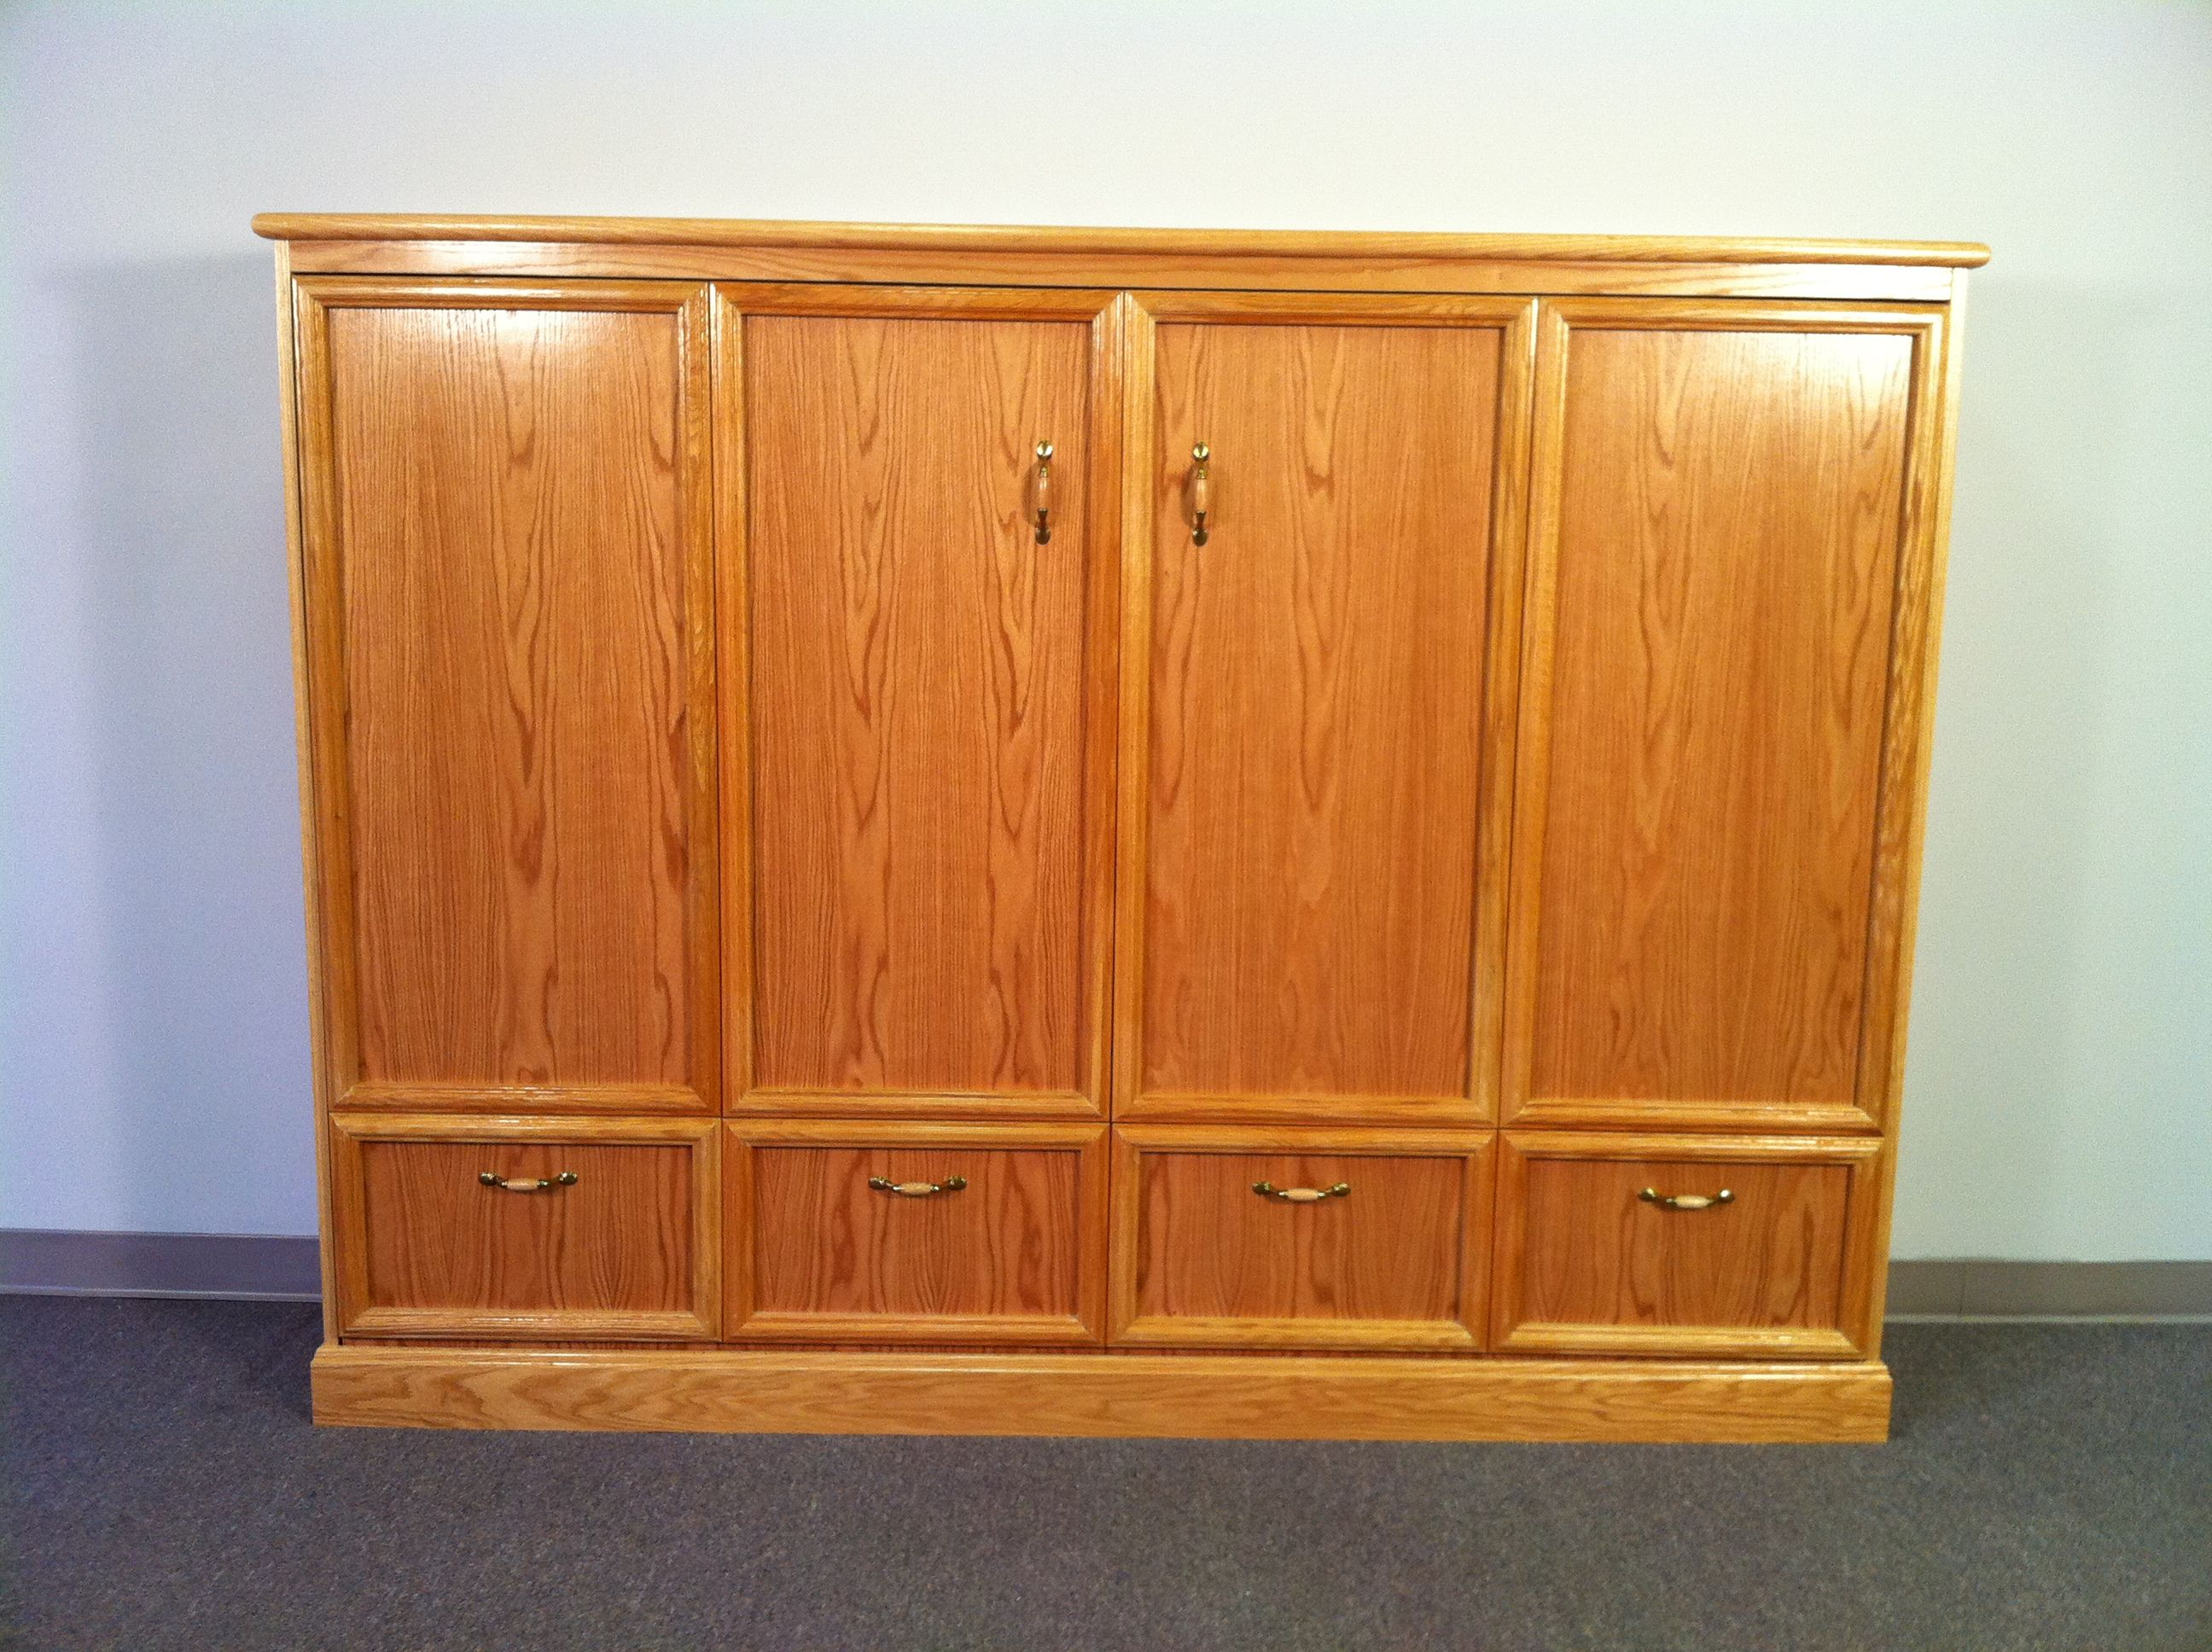 Deluxe Kit Horizontal FULL size murphy bed. Horizontal